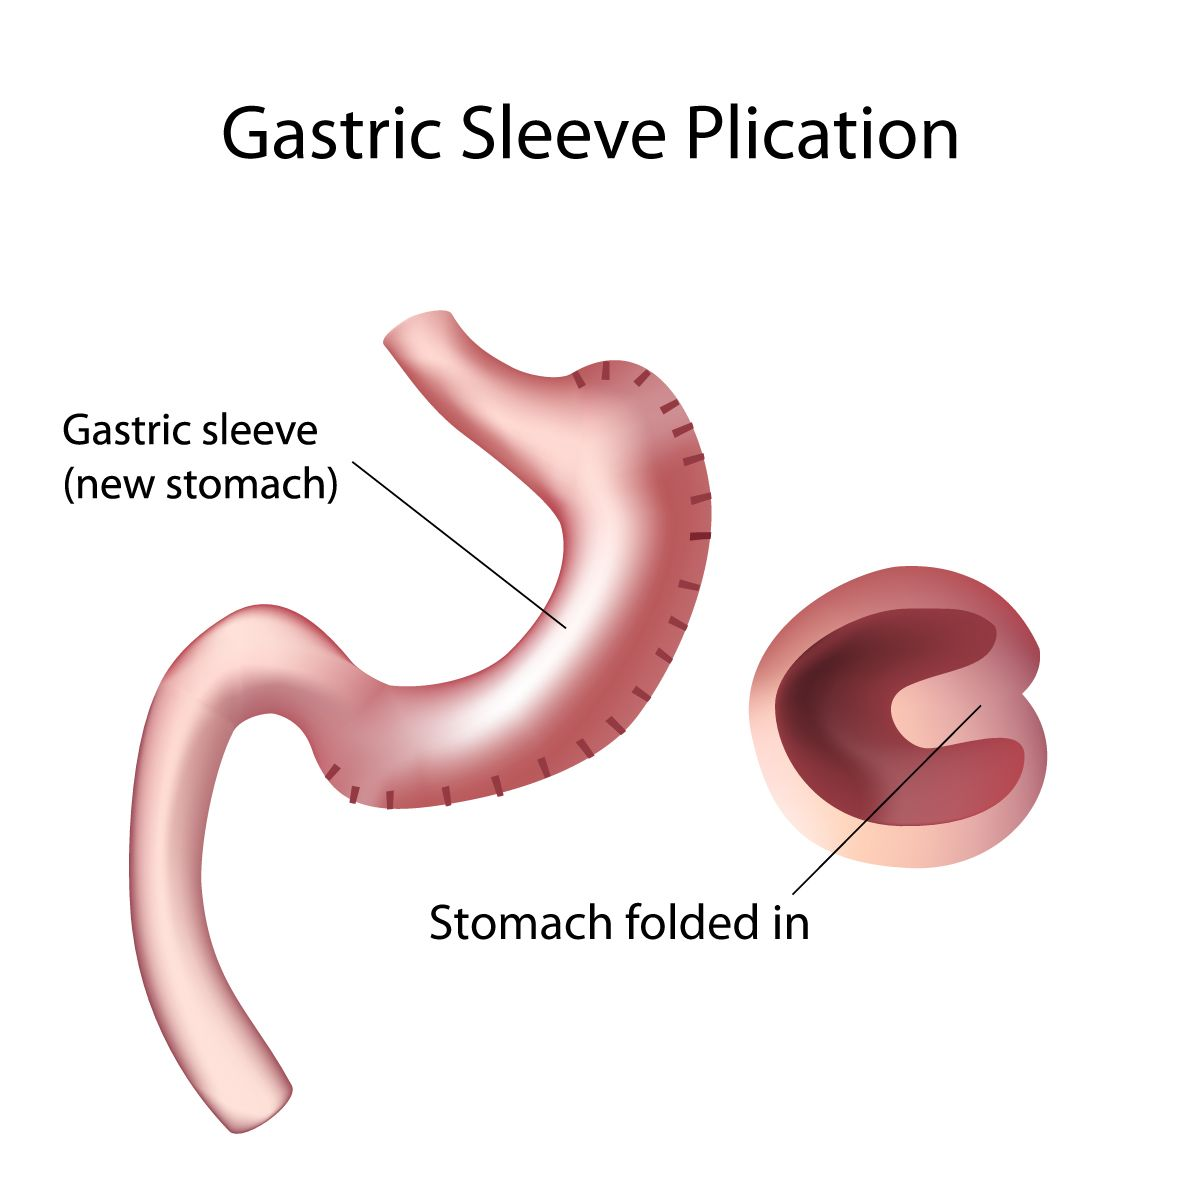 Illustration of the stomach after gastric plication surgery